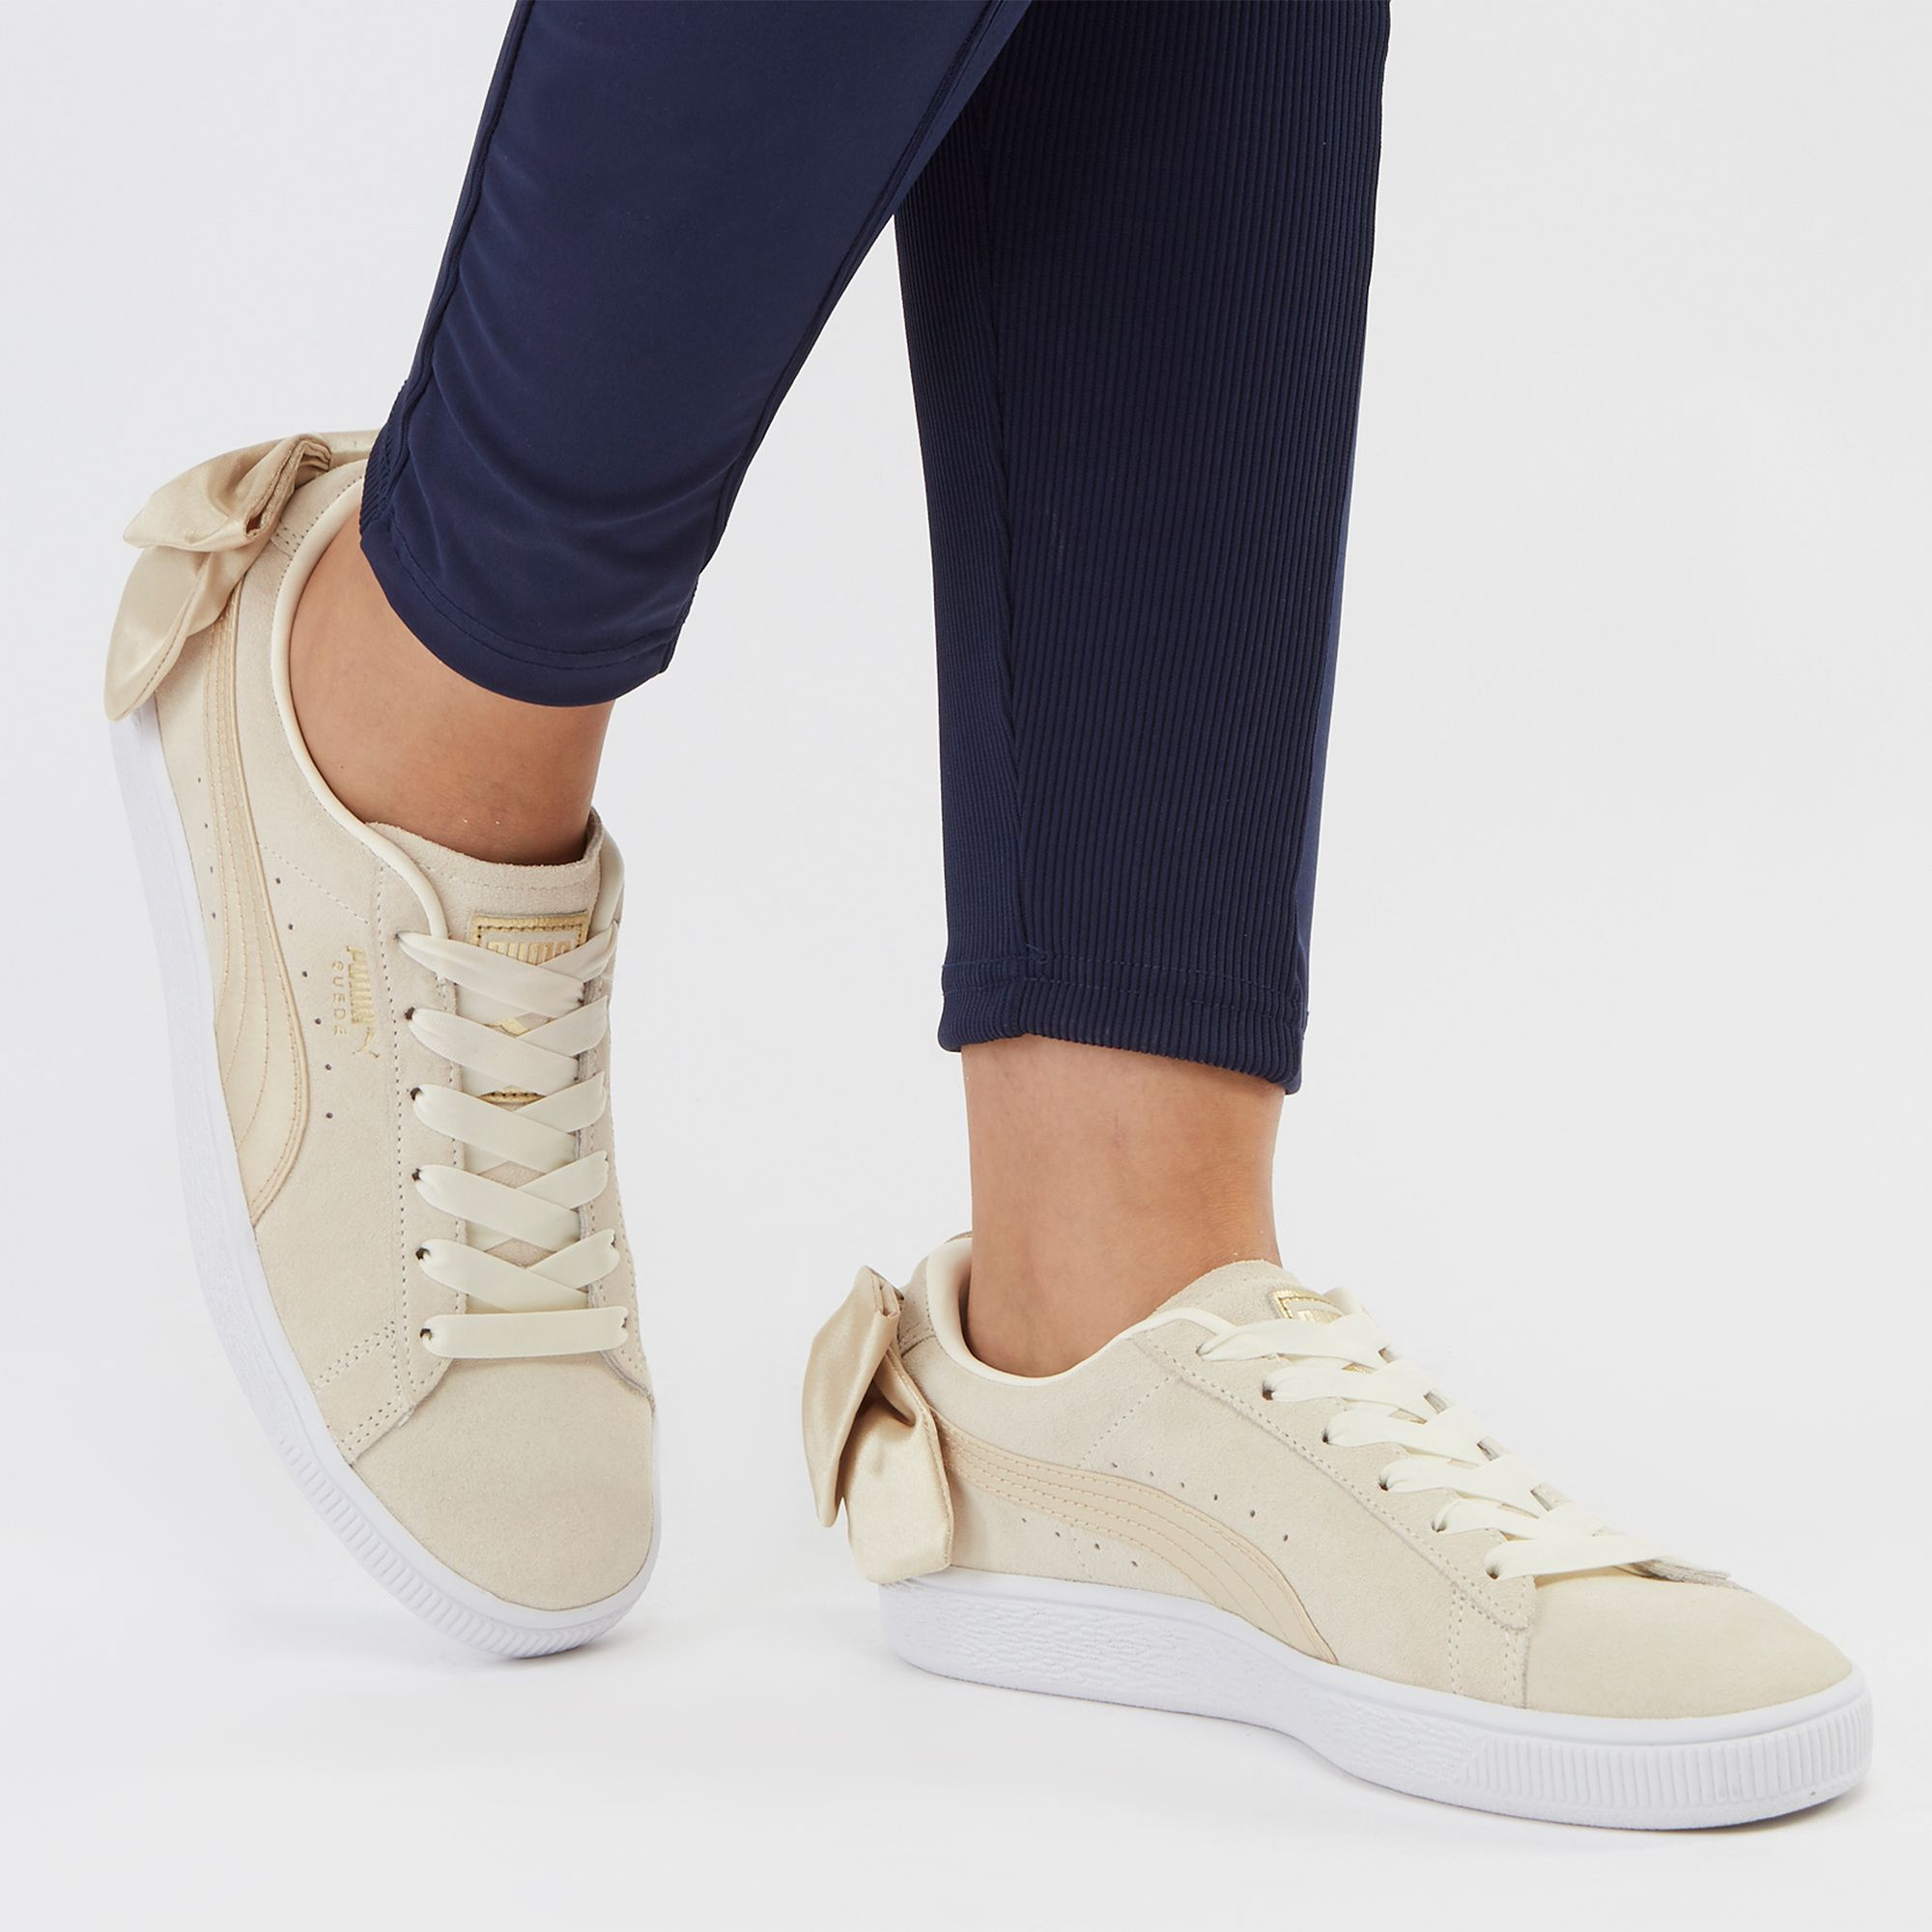 83bbaeeed8a Shop Pink PUMA Suede Bow Varsity Shoe